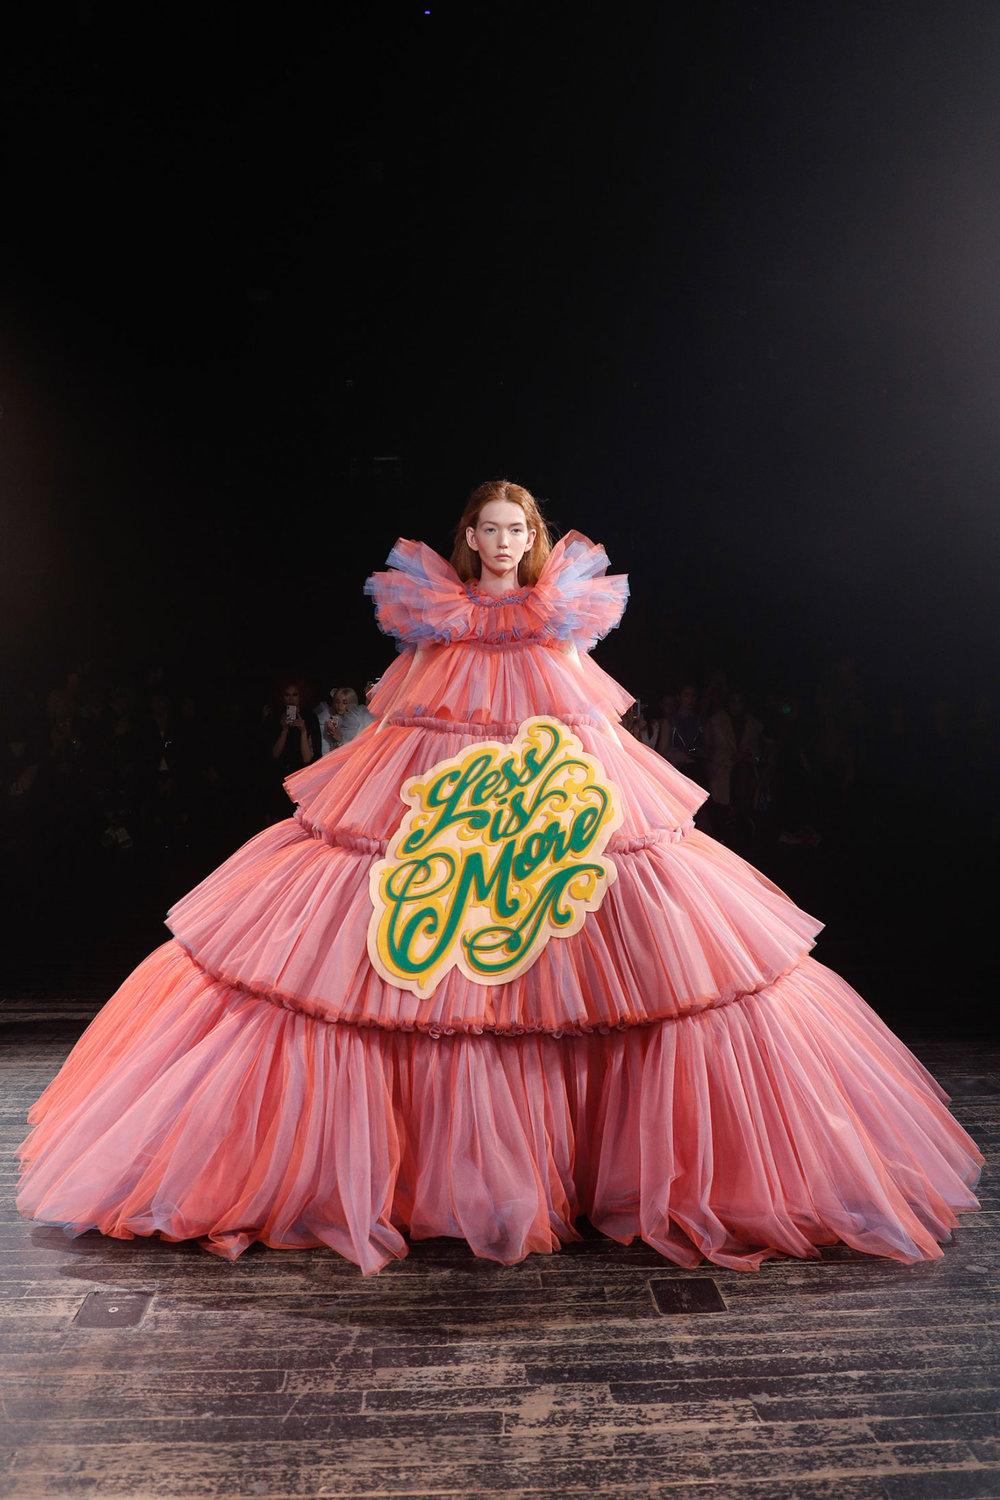 Viktor & Rolf Spring 2019 Couture Collection